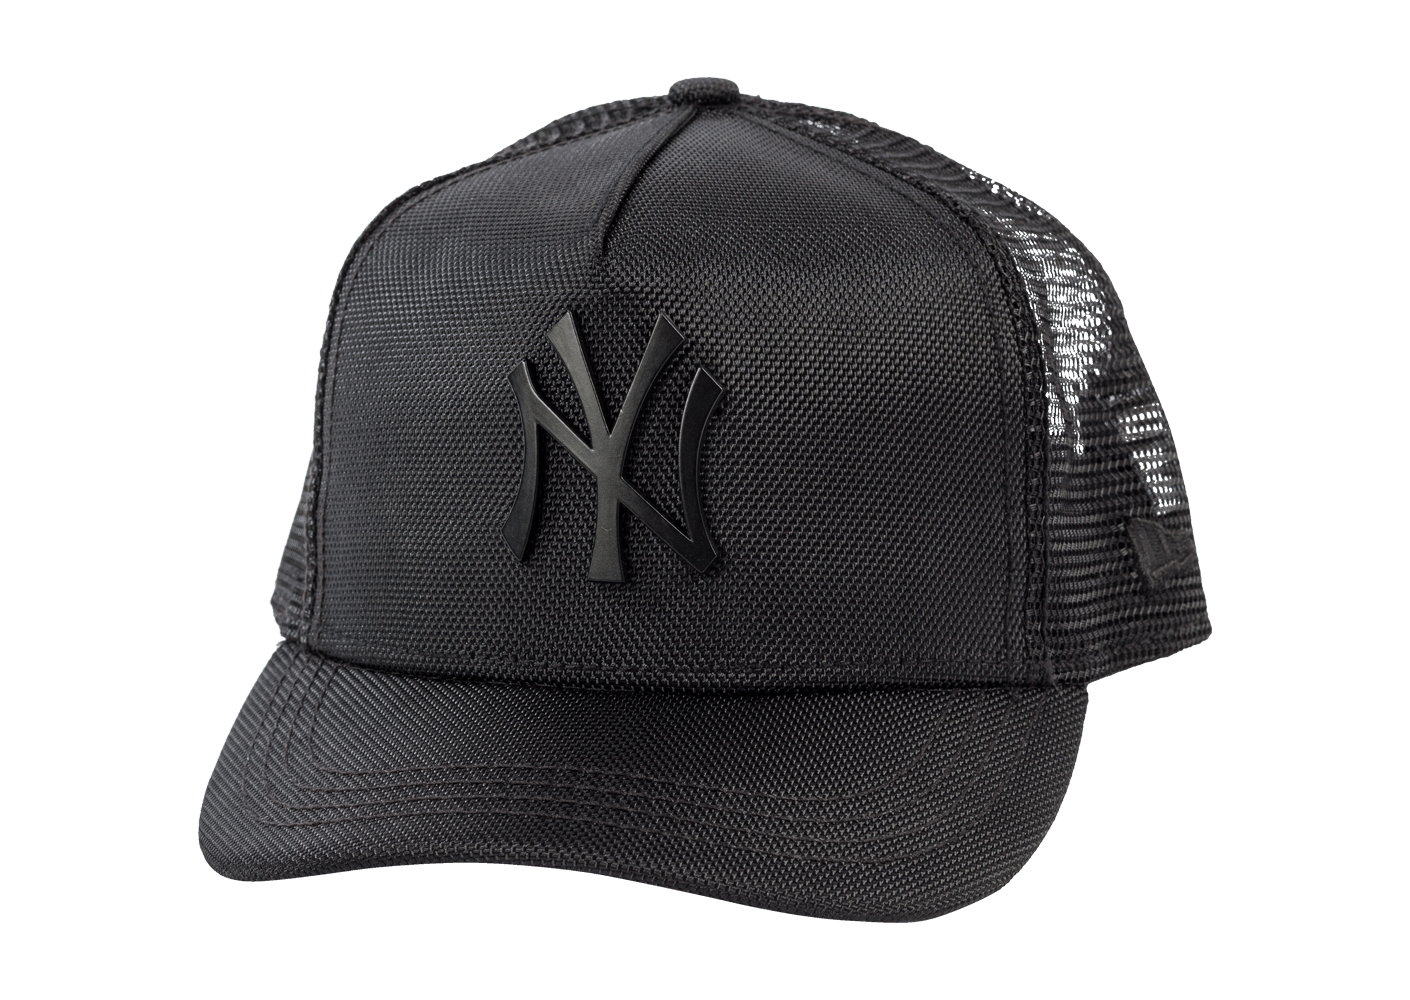 new era casquette trucker ny femme noire casquettes chausport. Black Bedroom Furniture Sets. Home Design Ideas